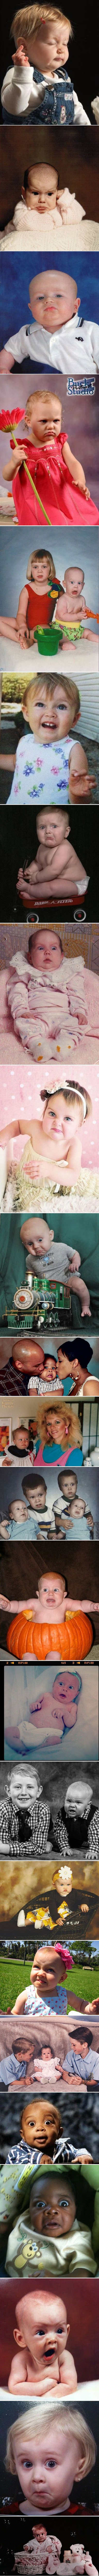 24 Funny Baby Photographs That Were Taken at the Perfectly Wrong Time - TechEBlog